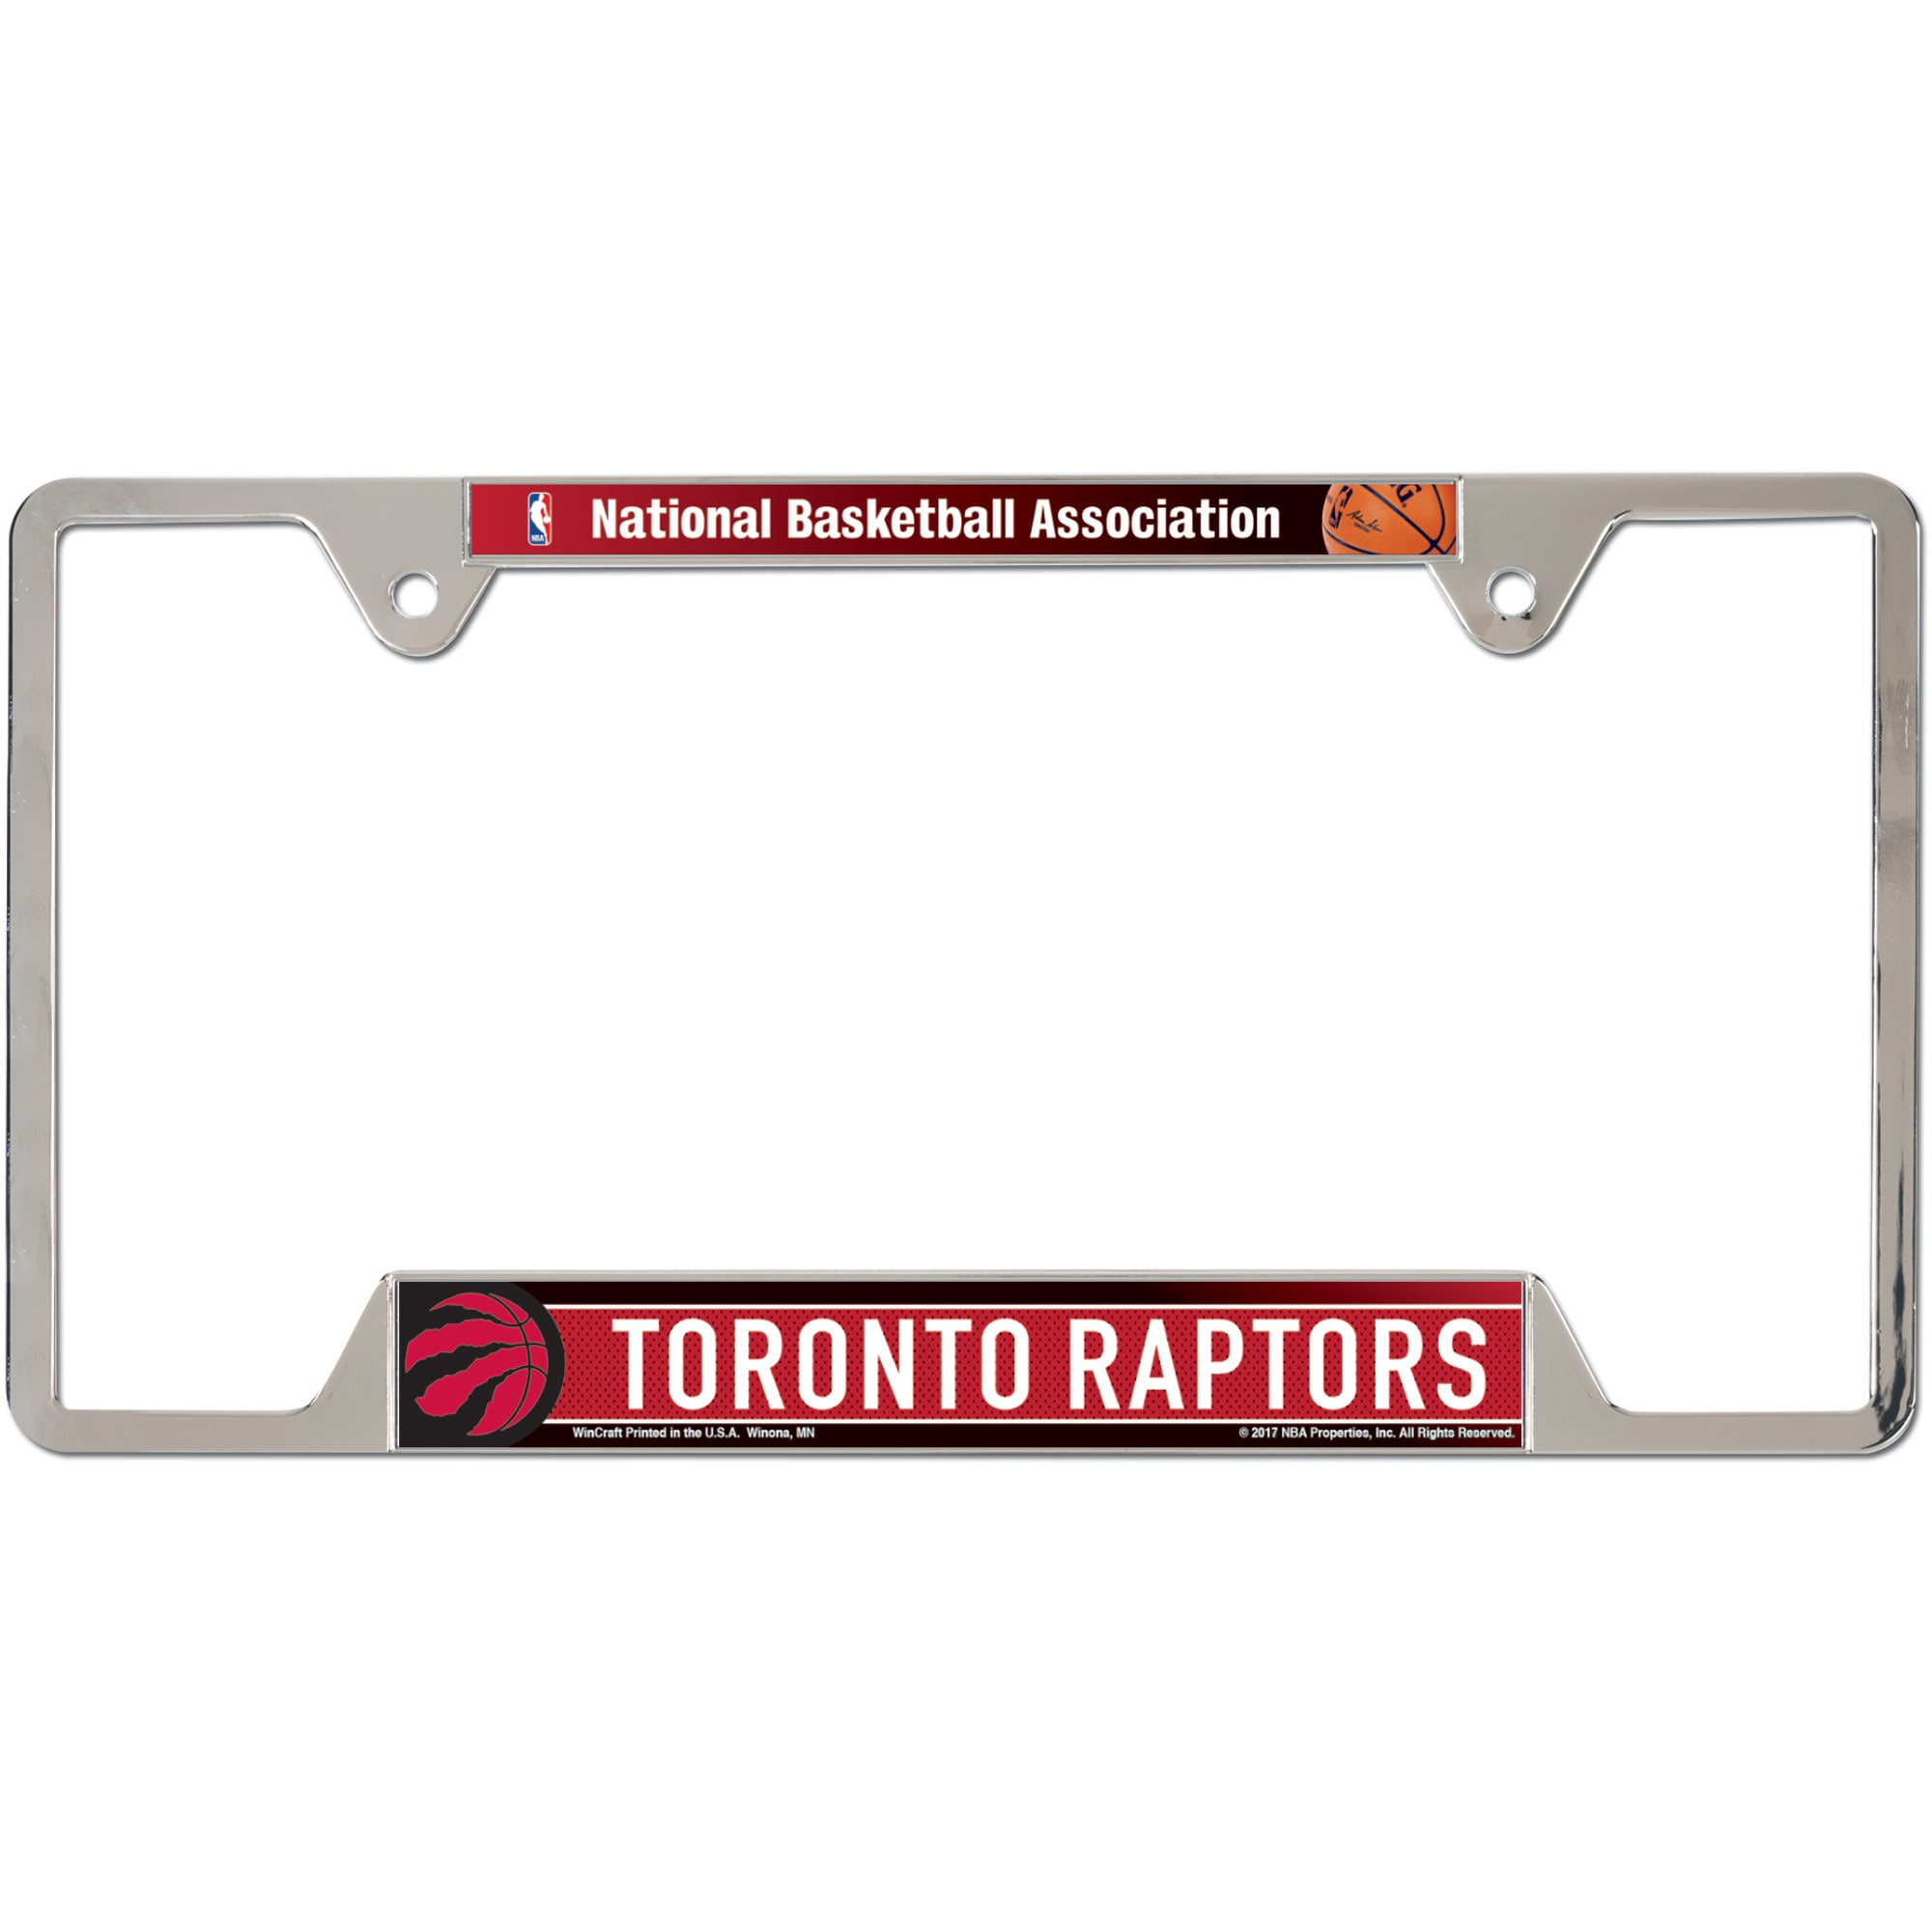 Toronto Raptors WinCraft Chrome Plated Metal License Plate Frame